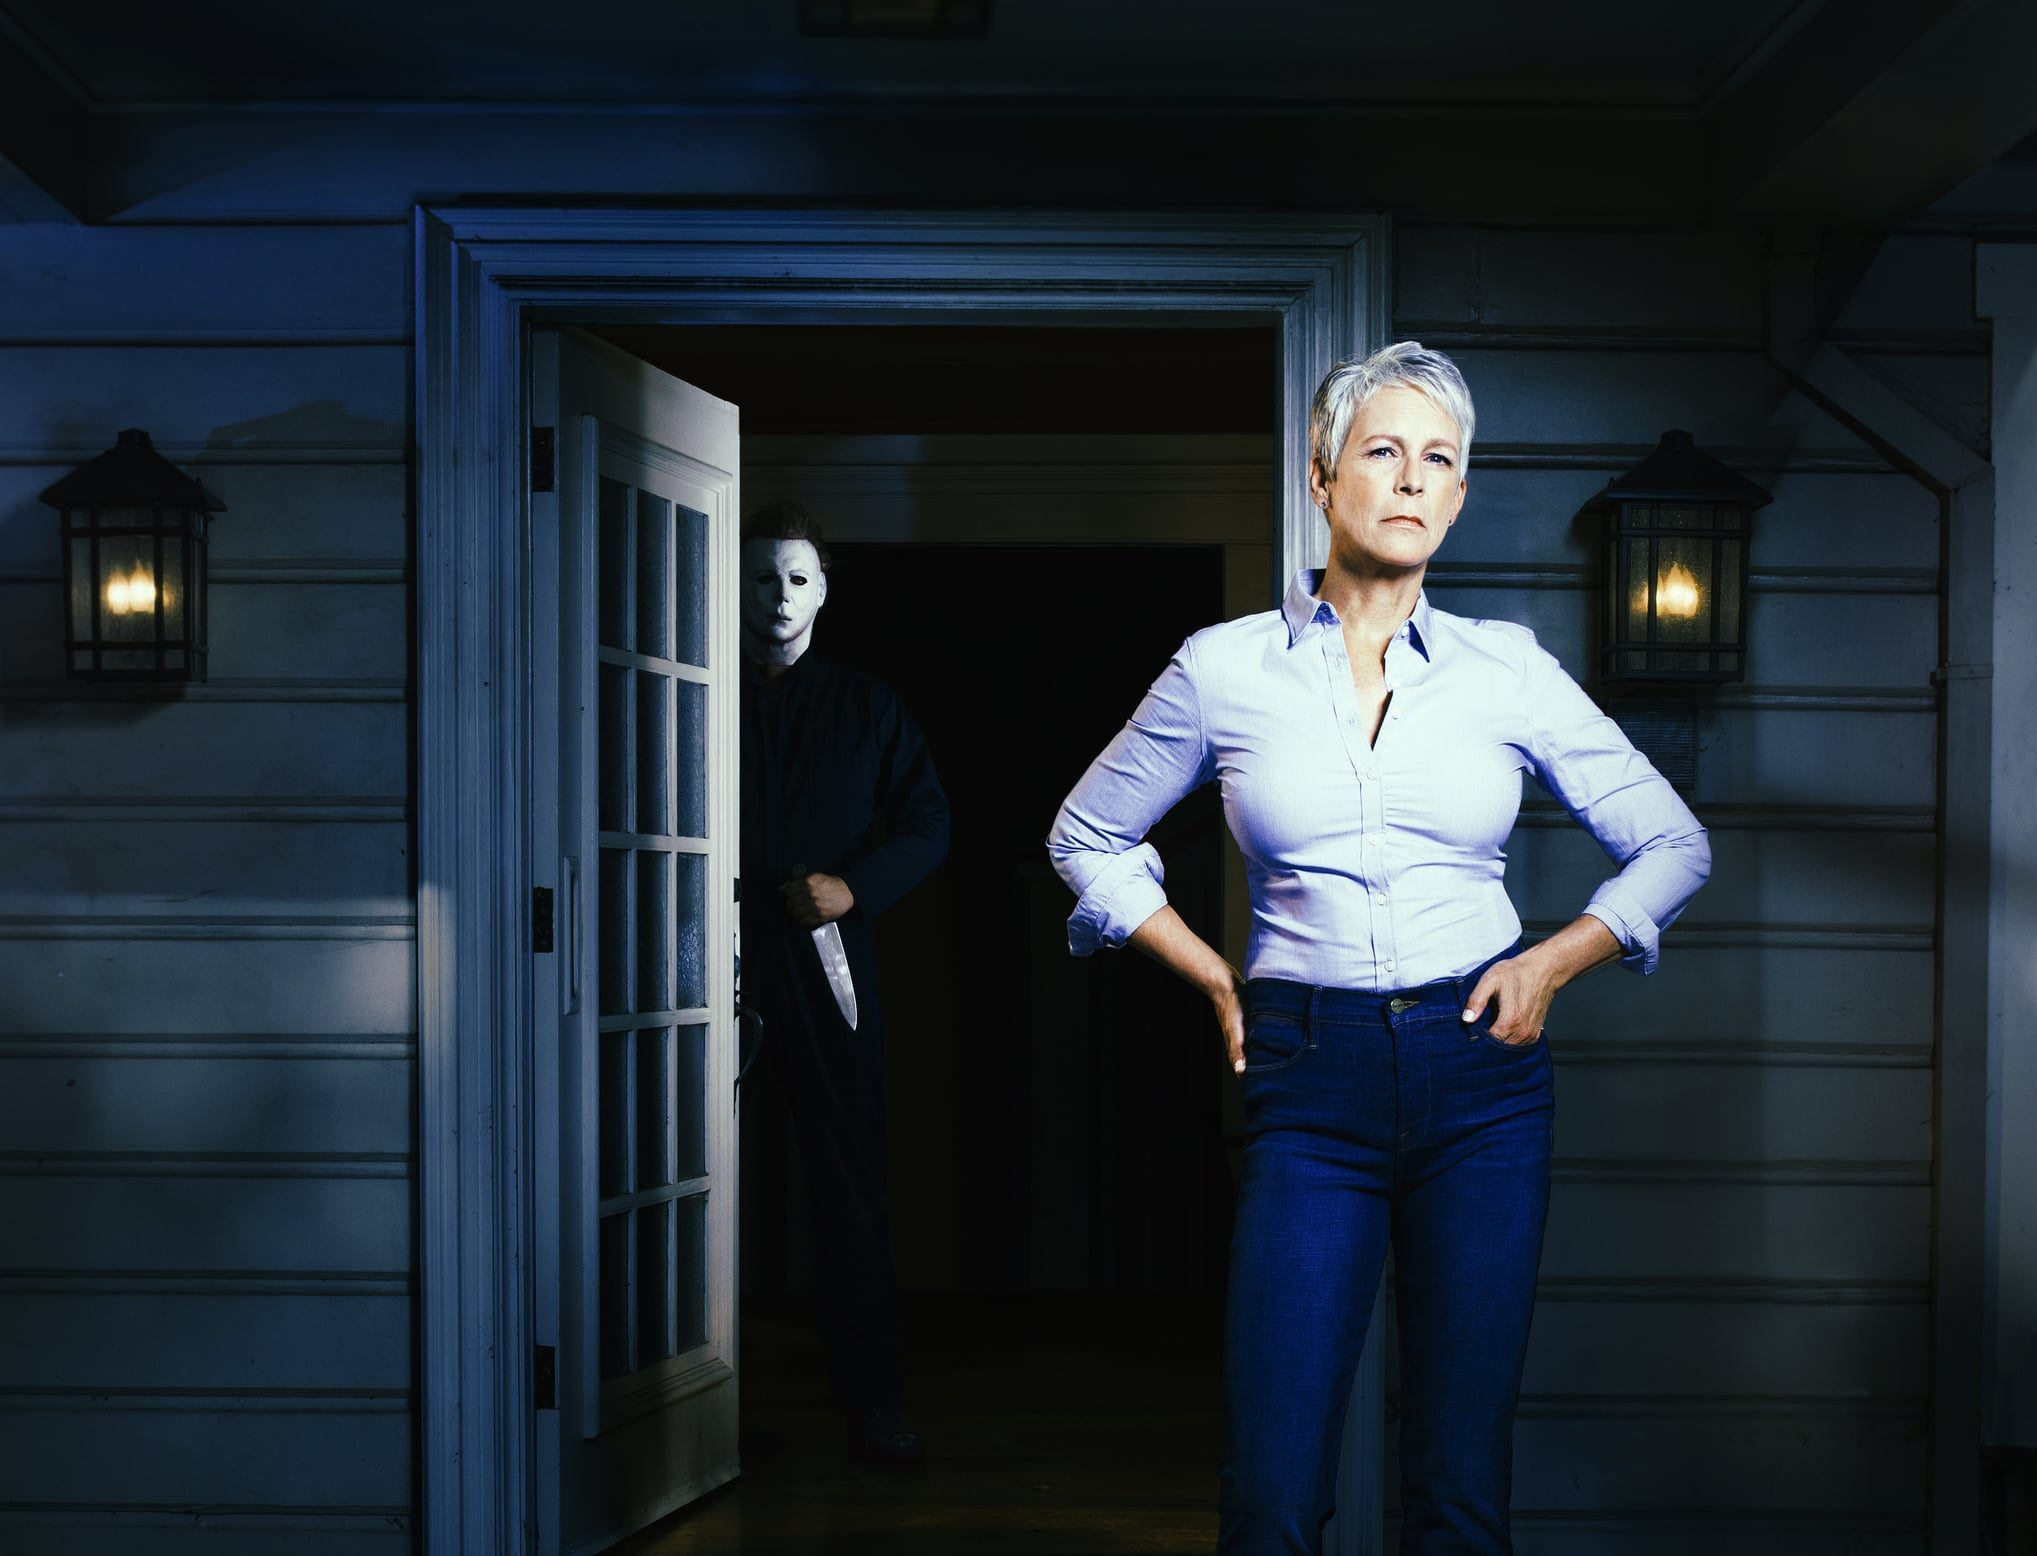 Jamie Lee Curtis wants the Halloween movies to inspire more women